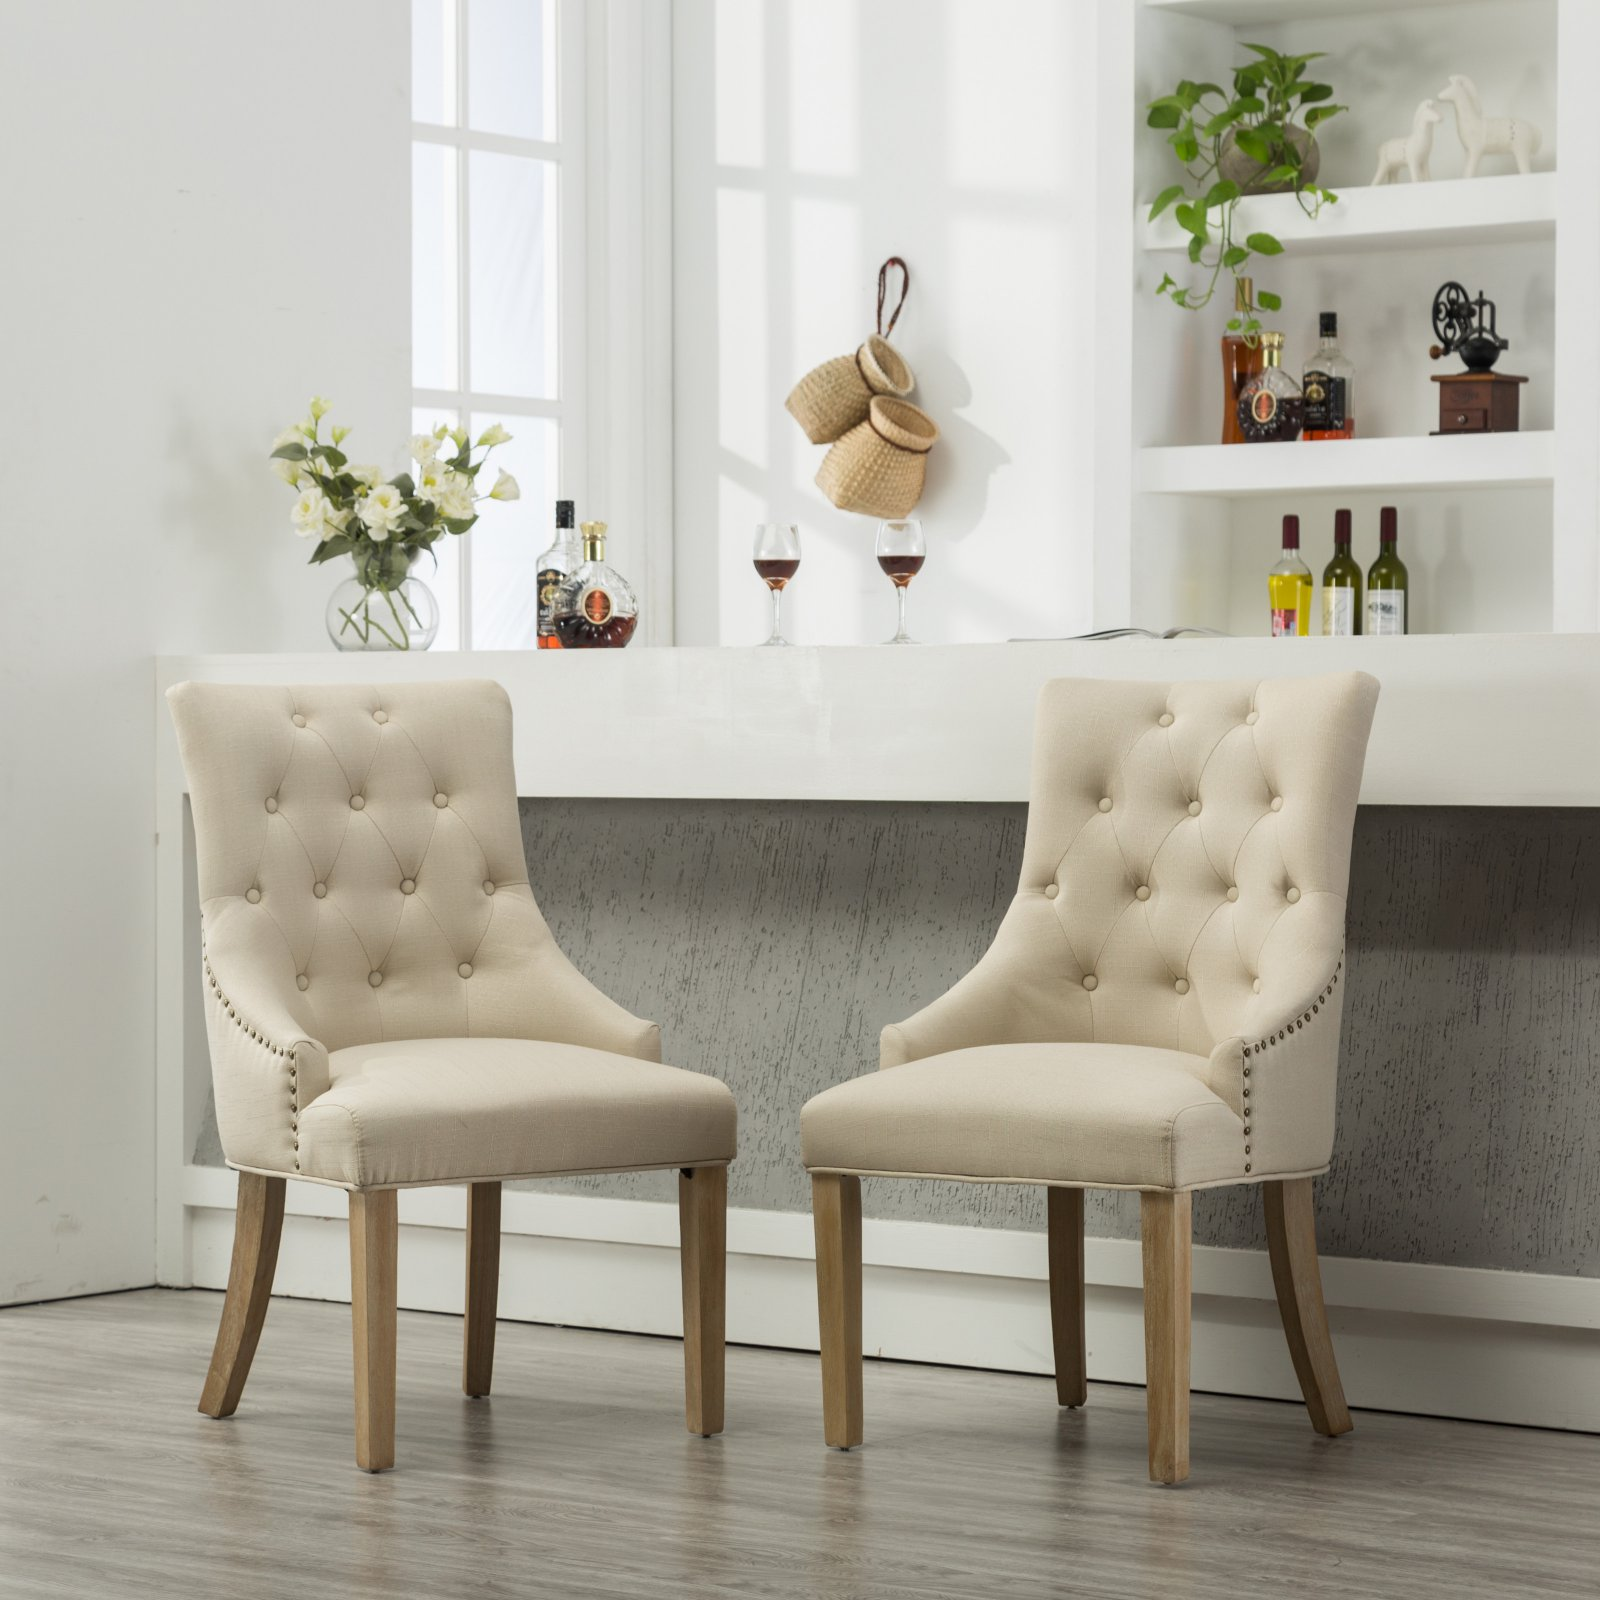 Roundhill Gray Button Tufted Solid Wood Wingback Hostess Chairs with Nail Heads, Set of 2